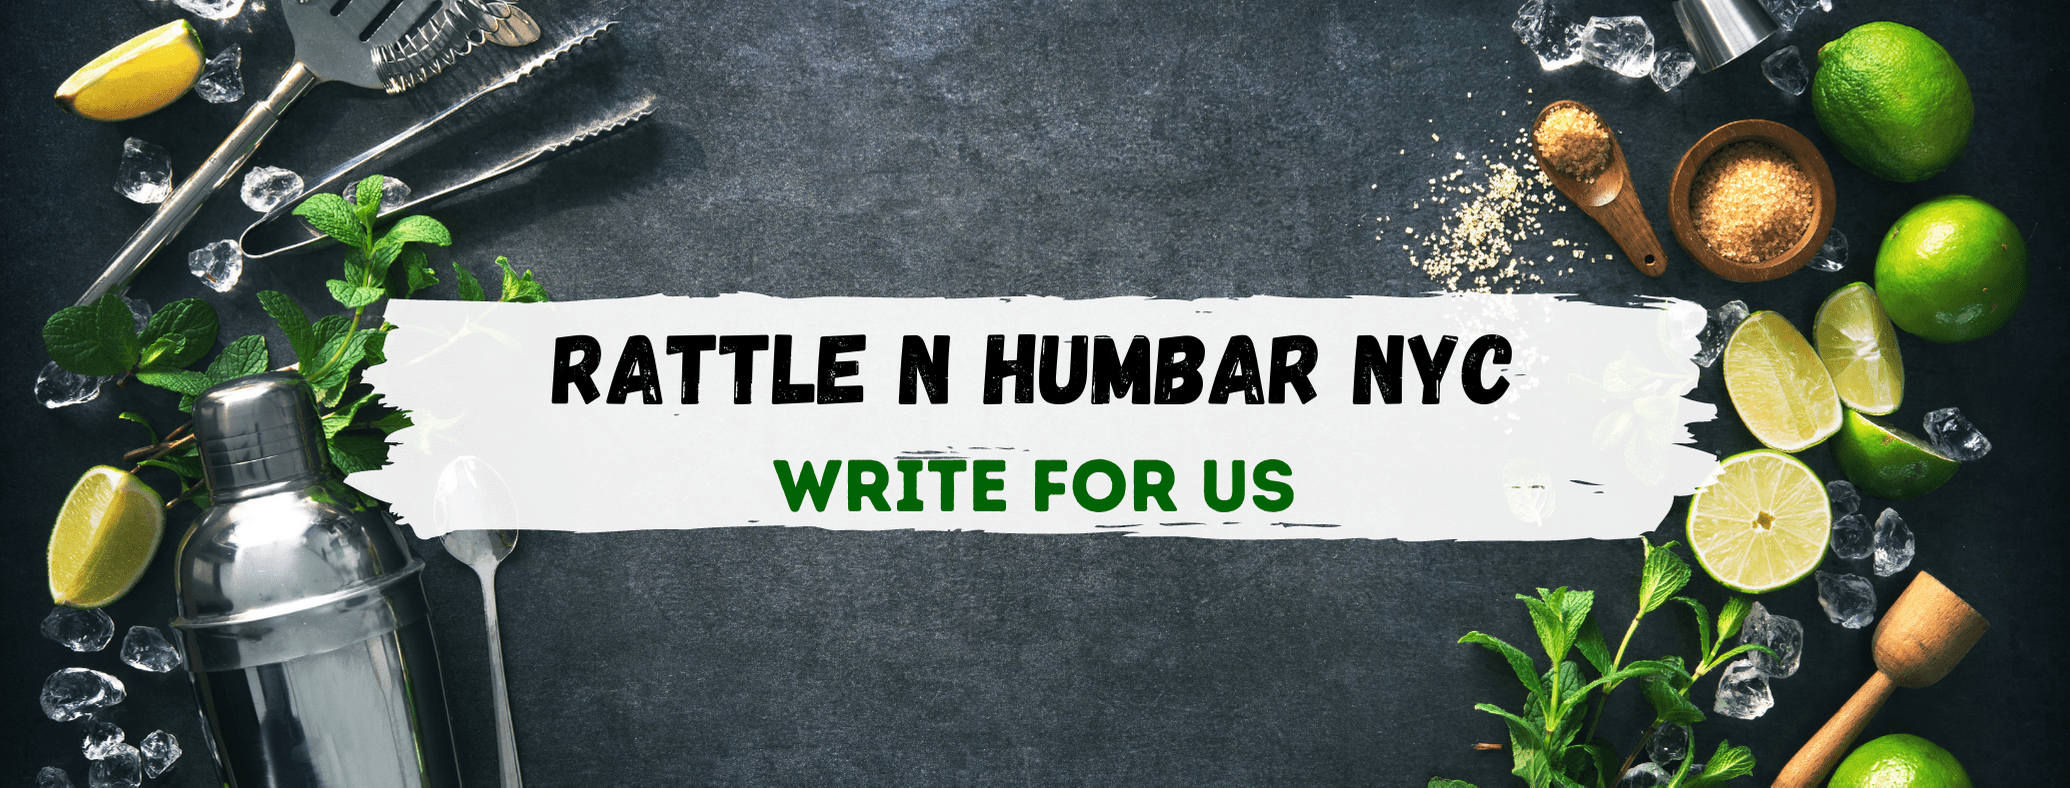 Rattle N Hum Bar NYC Write For Us